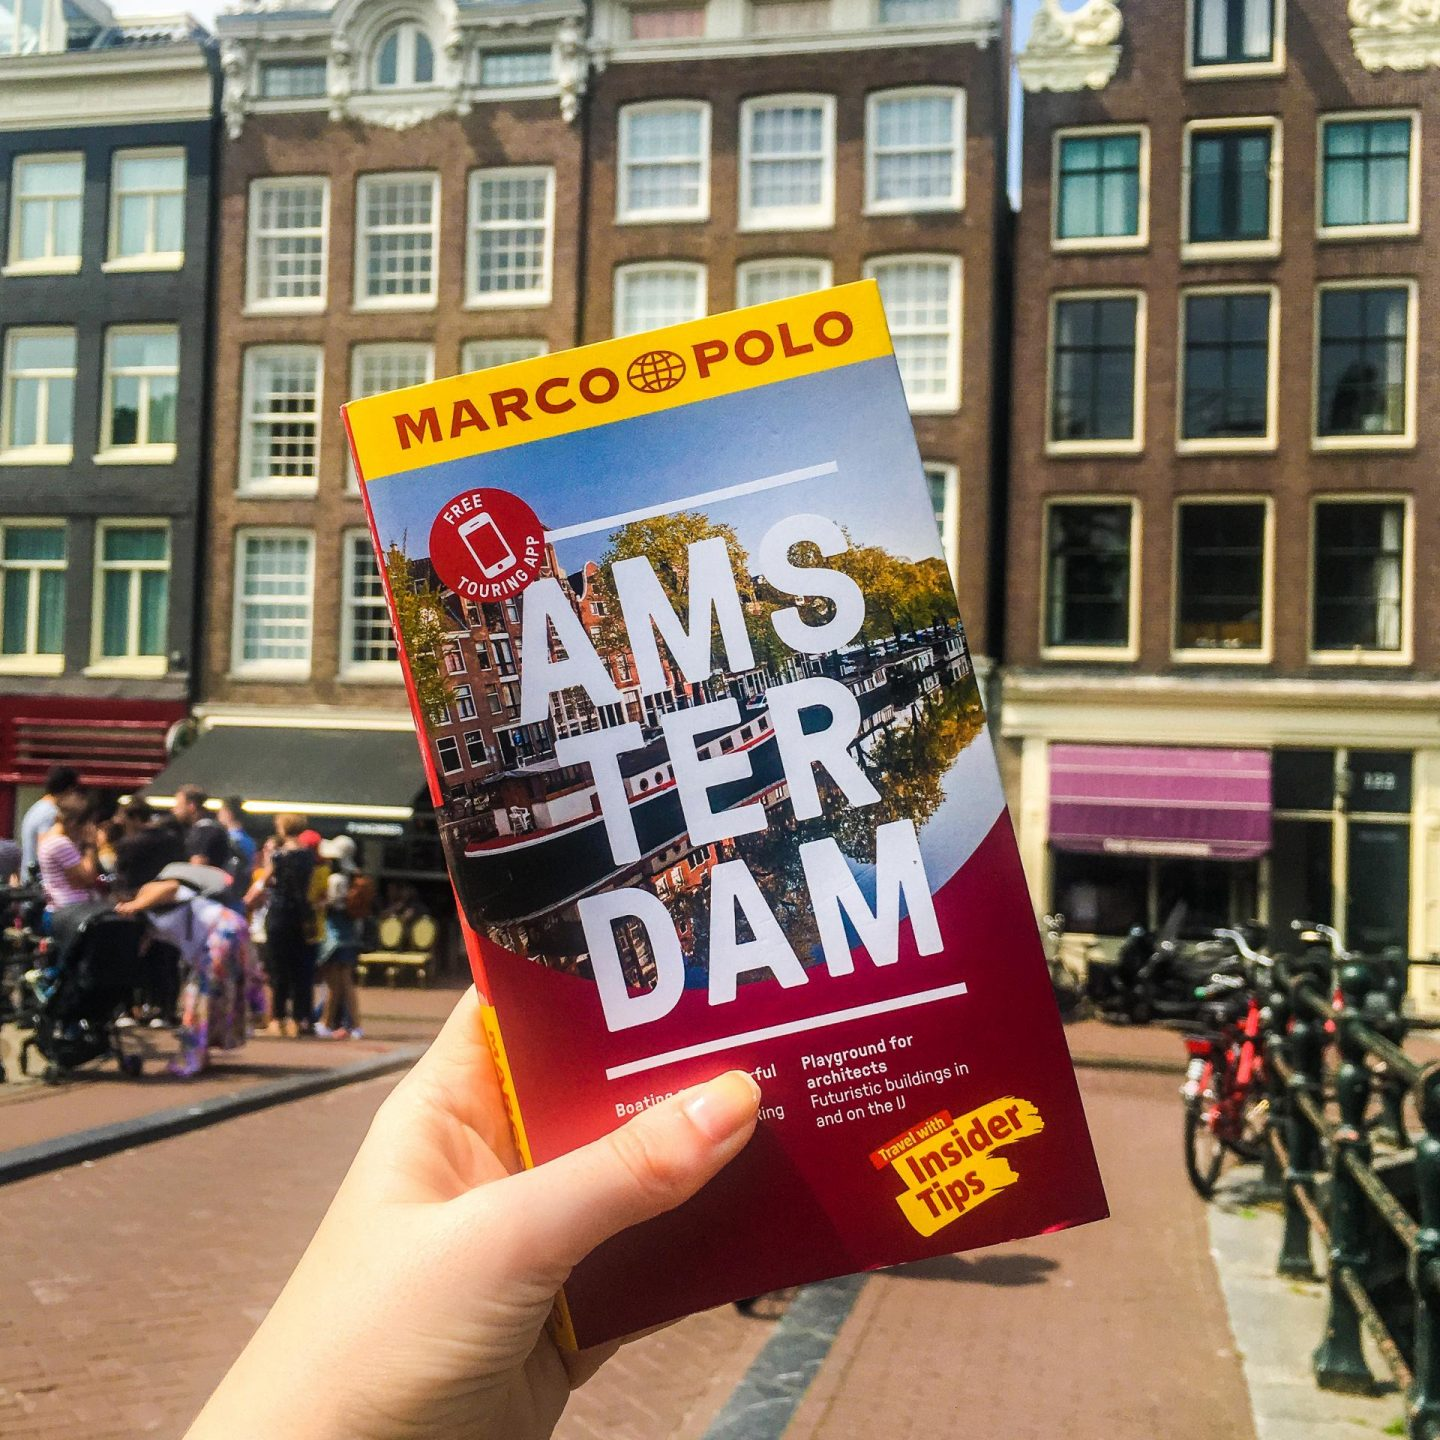 Three Days in Amsterdam with Marco Polo Guides - Rachel Nicole UK Travel Blogger